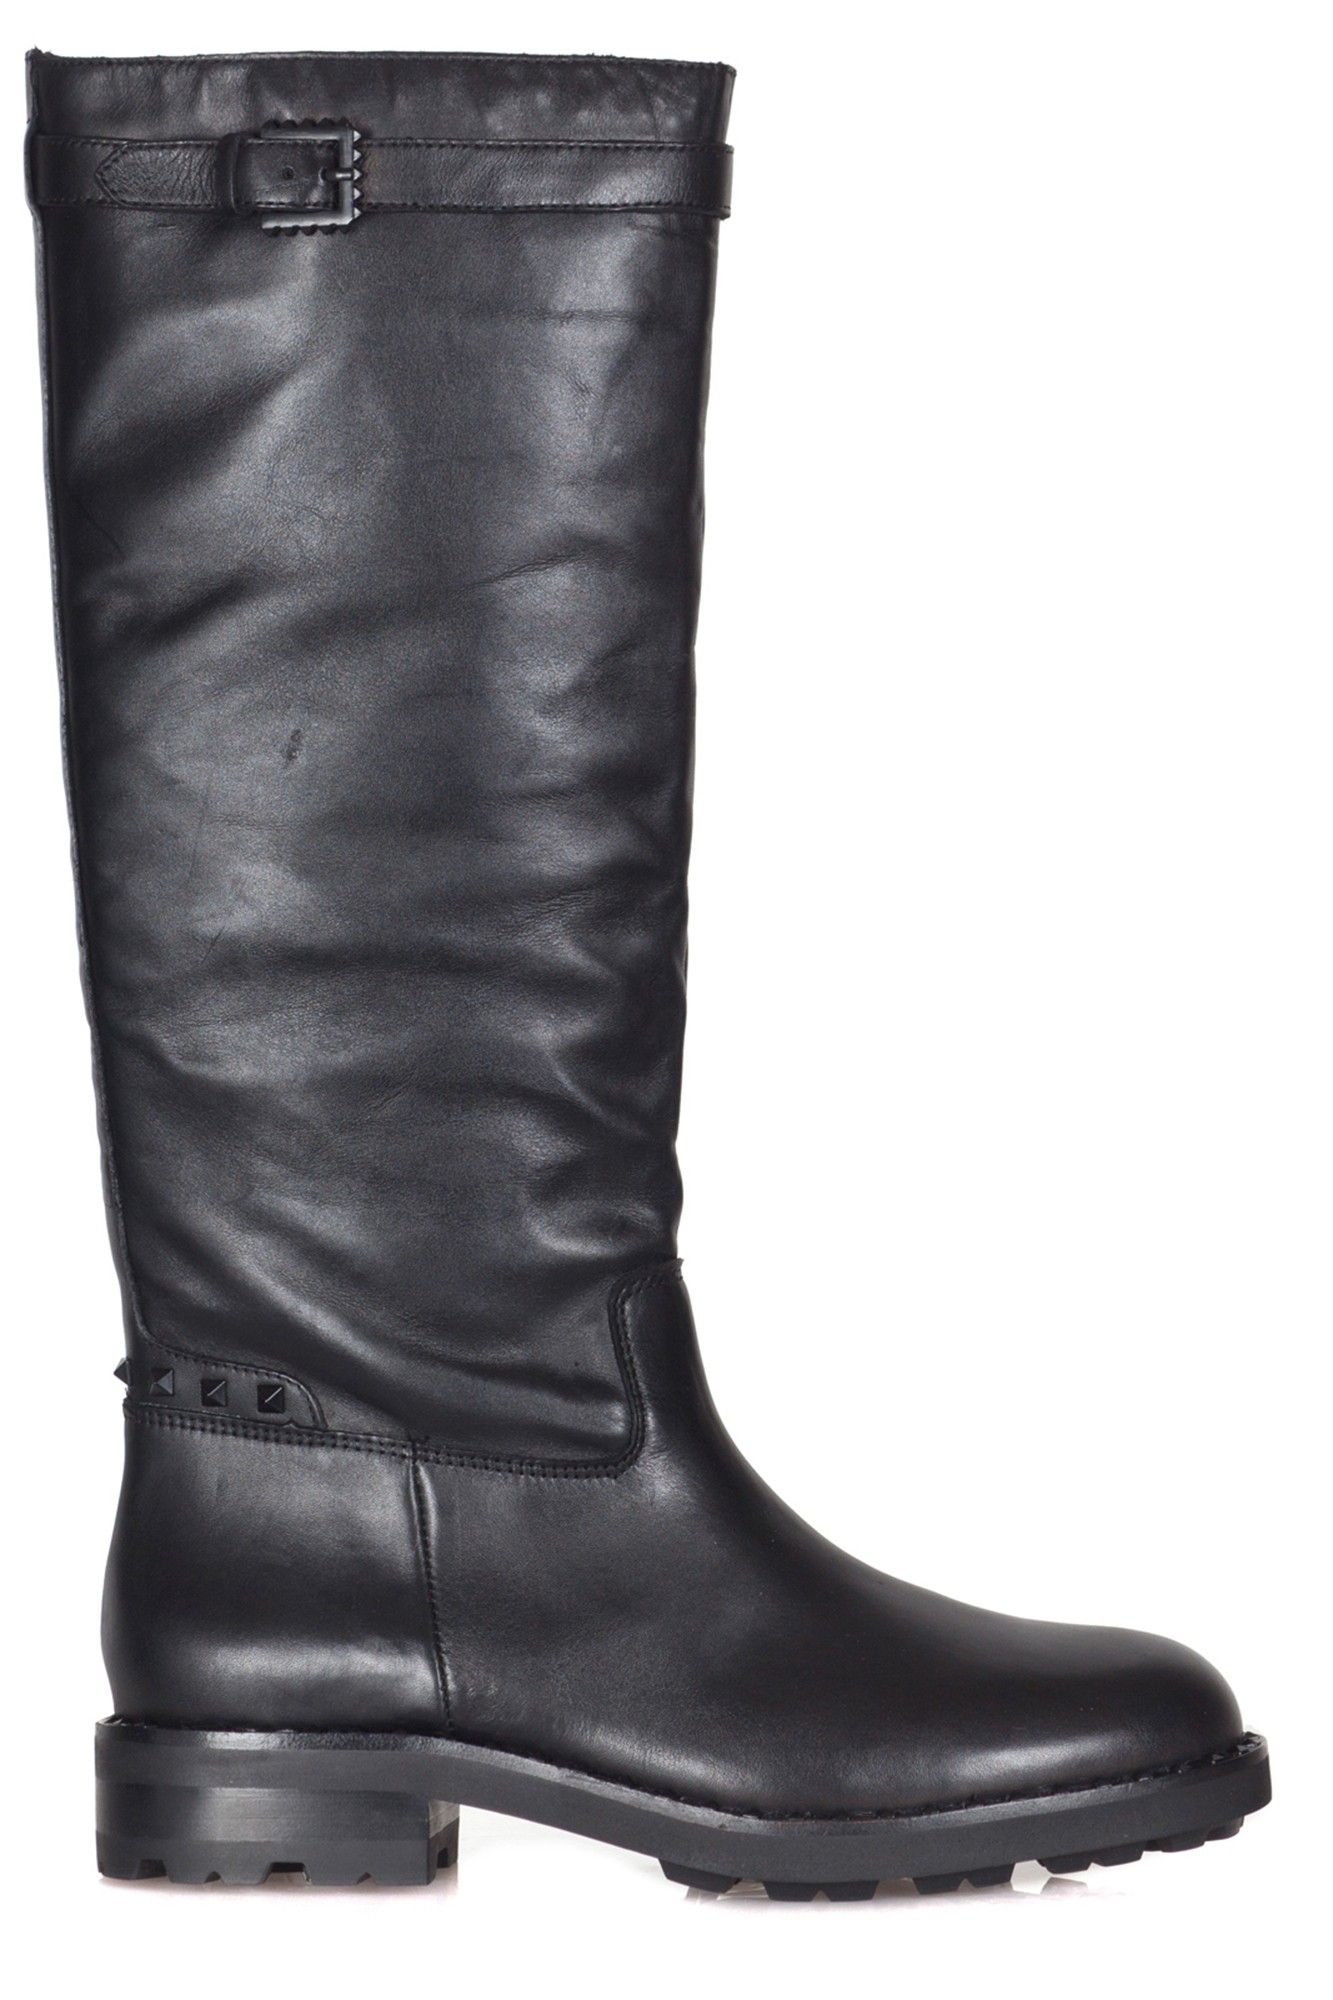 Ash Wampas Leather Boots In Black